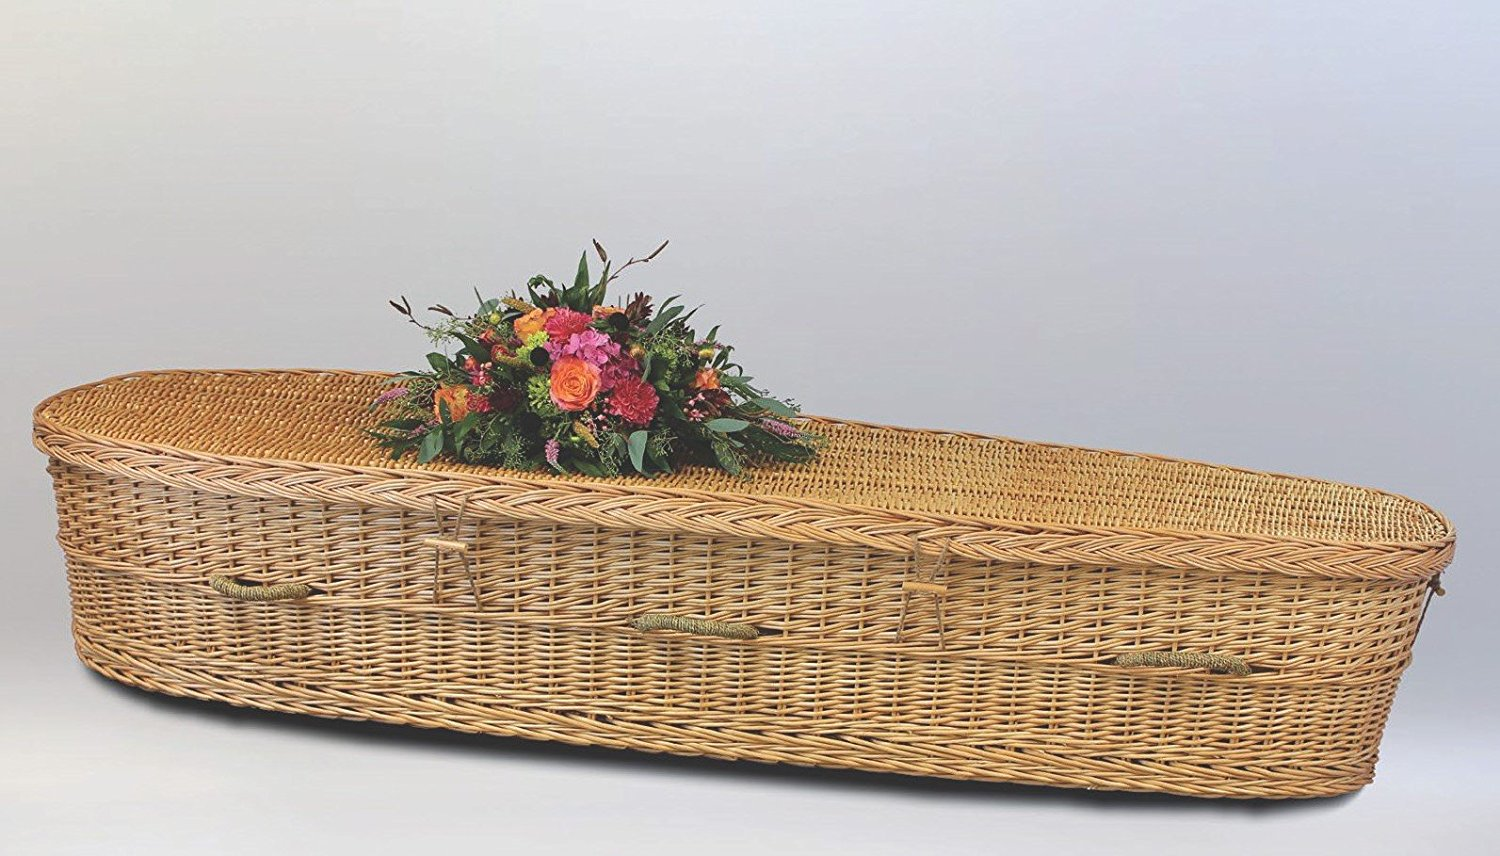 Willow biodegradable coffin